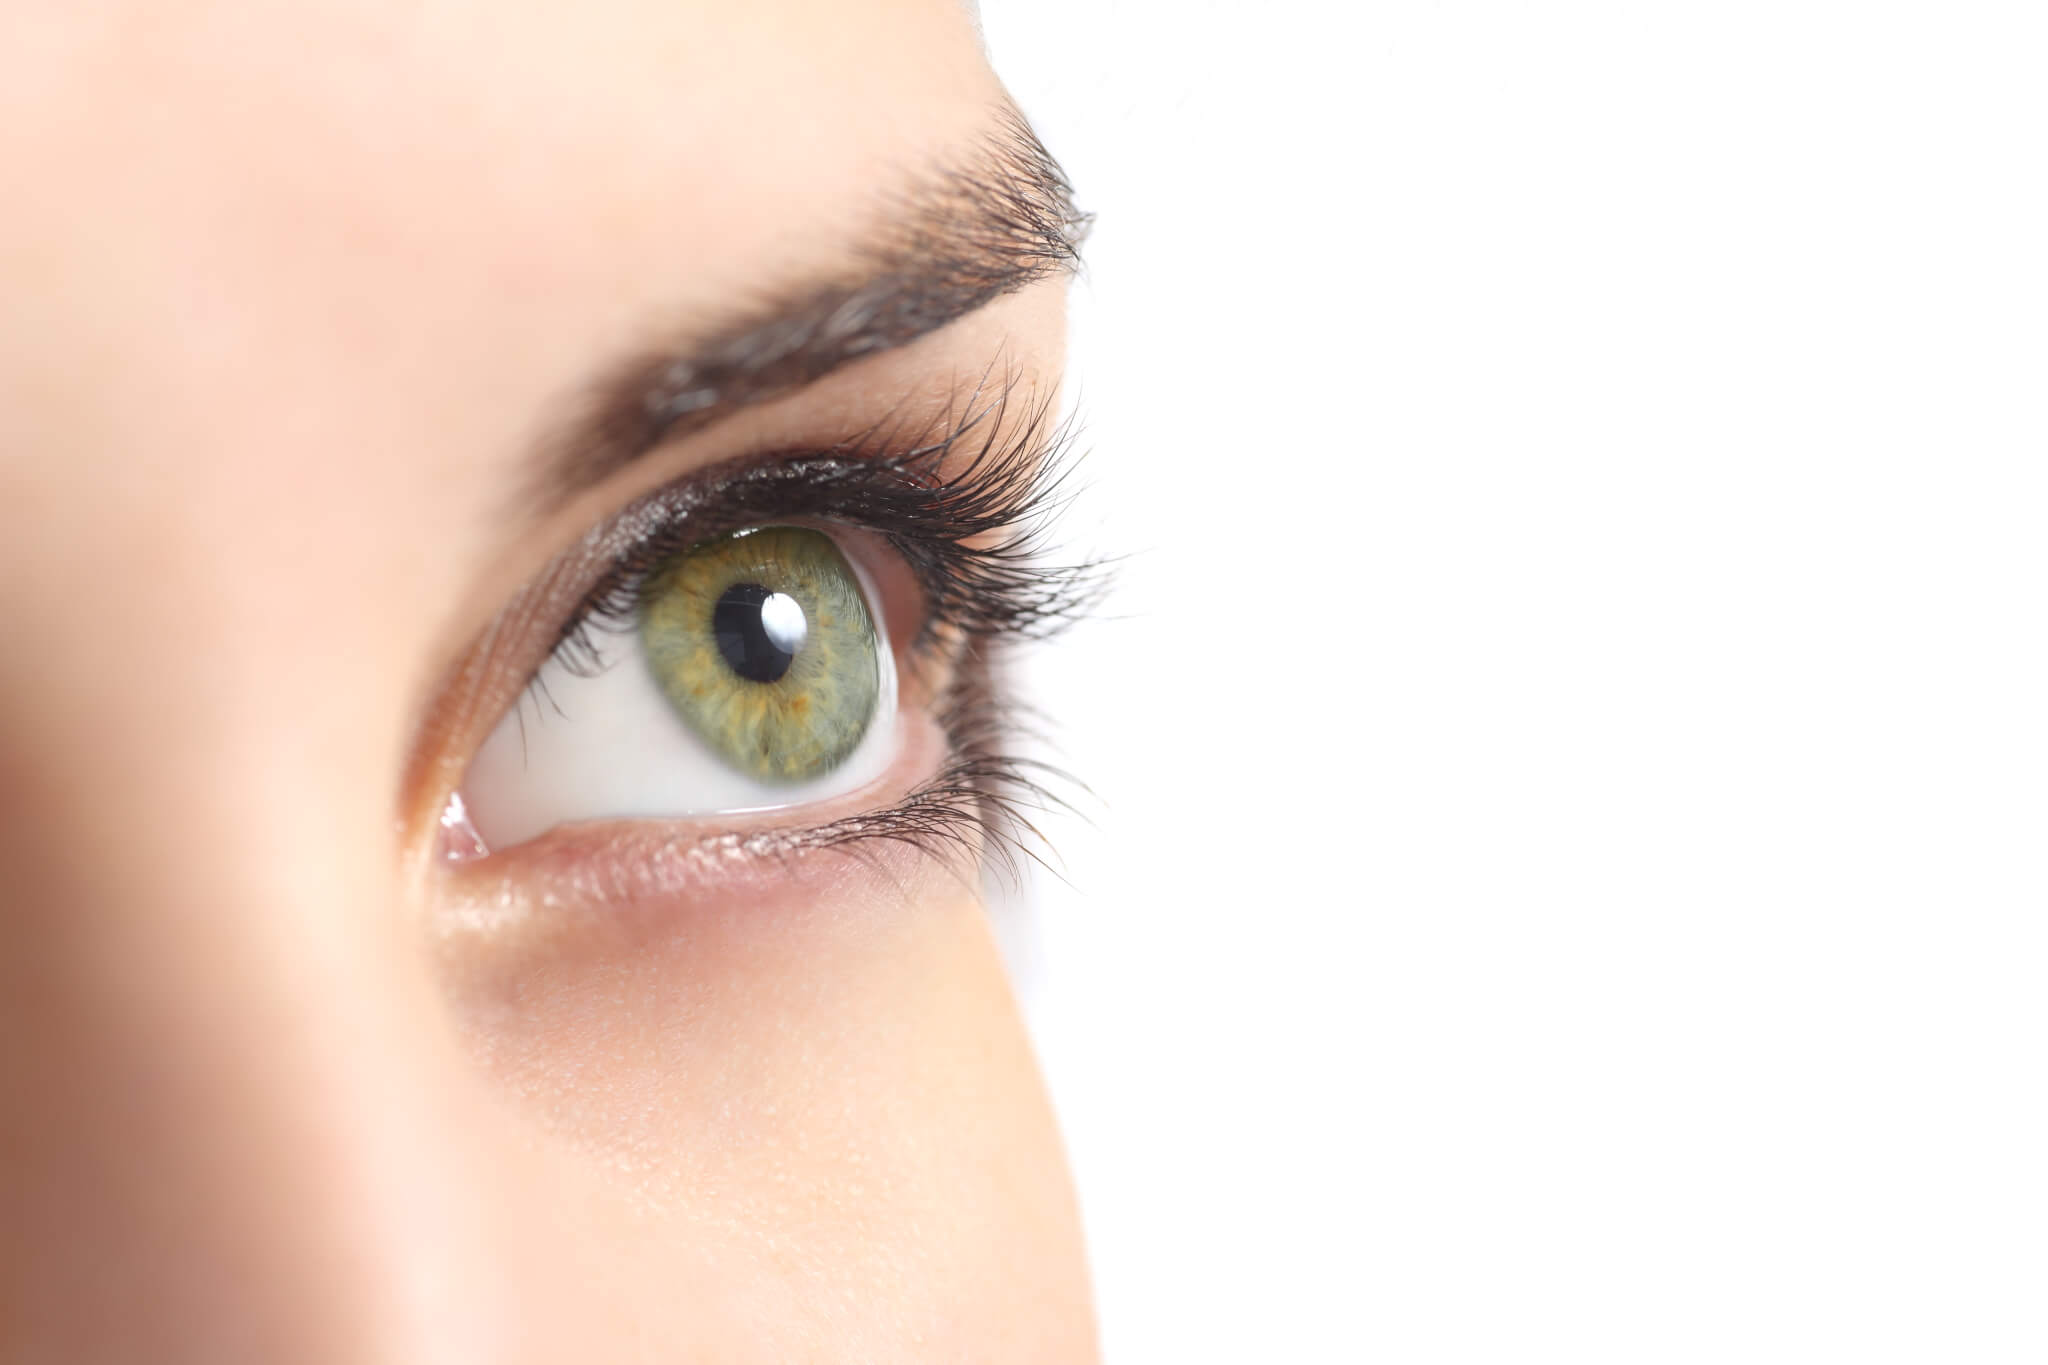 PRELEX - Lens Replacement Procedure Offered At Advanced Laser Vision